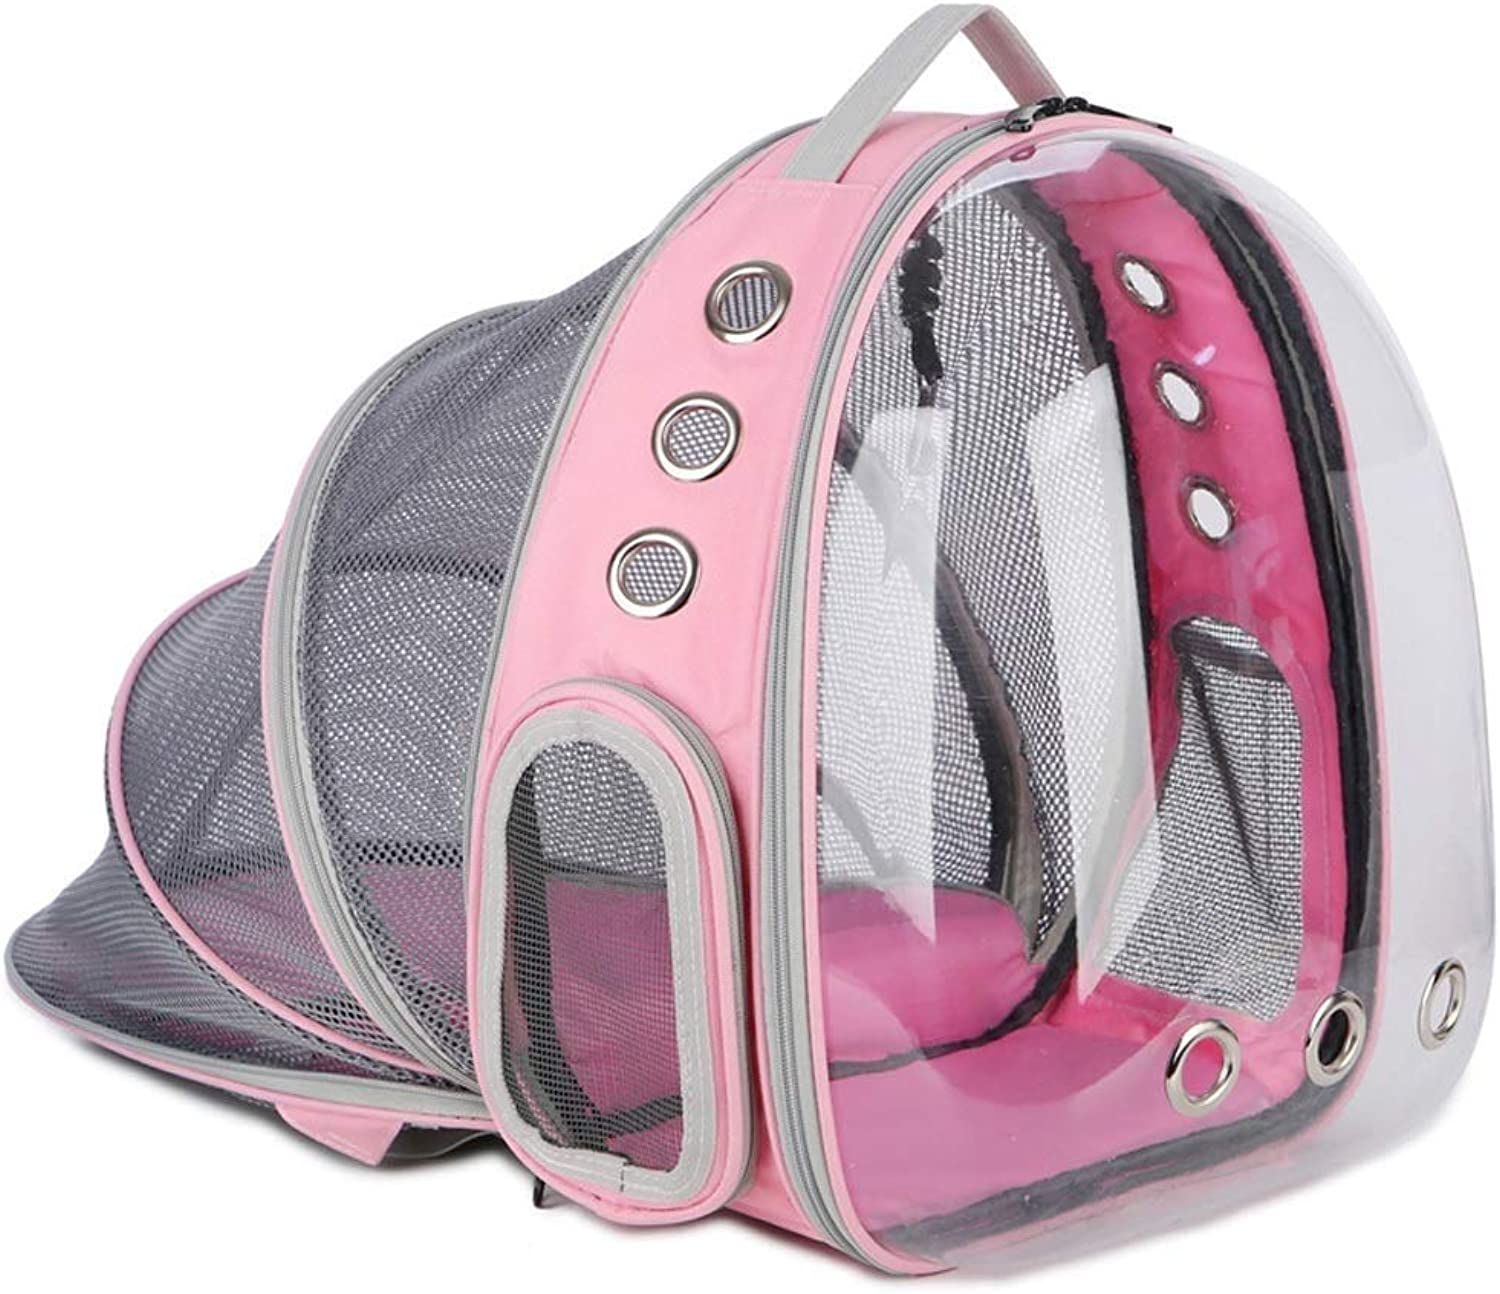 Portable Cute Pet Backpack Retractable Backpack Pet Outdoor Transparent Pet Capsule Backpack Pet Traveler 13in11in16.5in Comfortable And Durable Multicolor Optional (color   Pink)